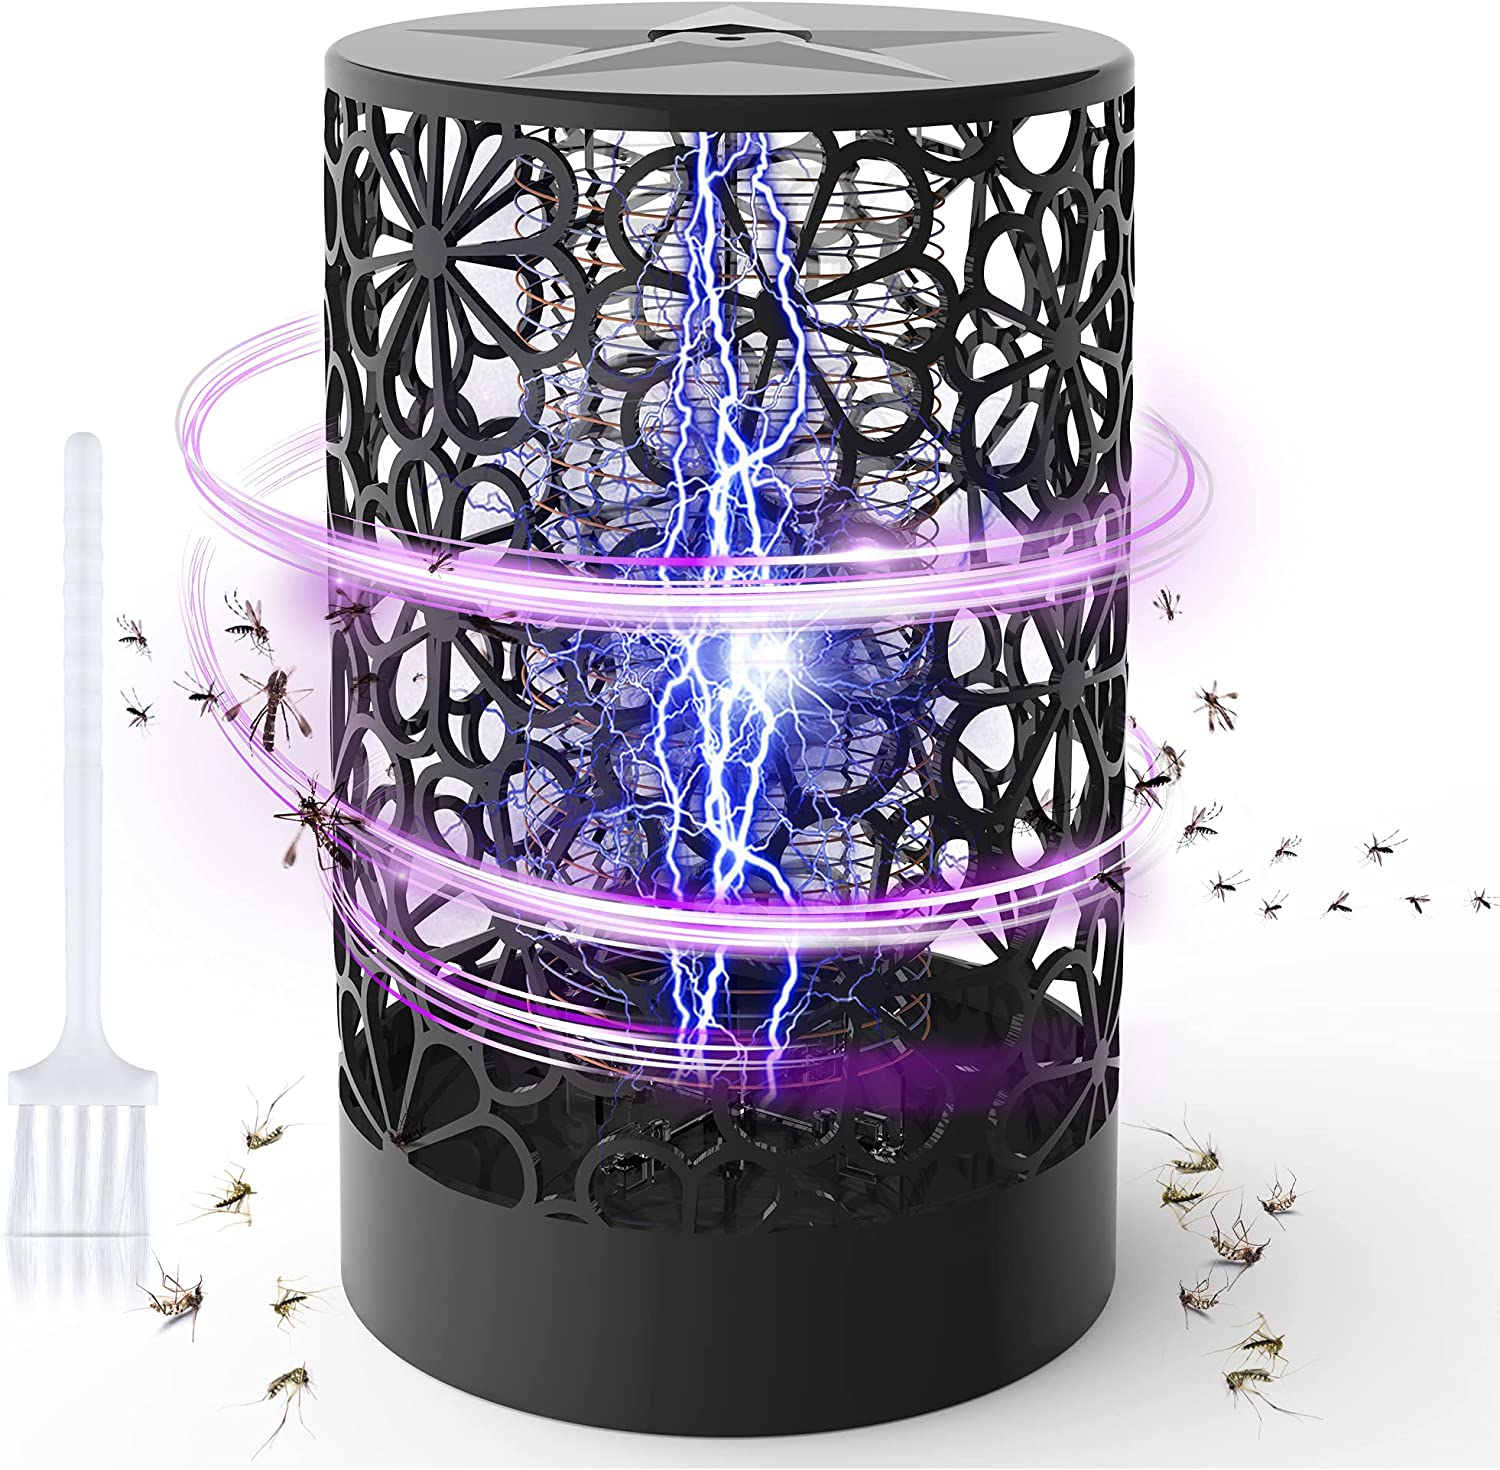 Bug Zapper, 4200V Electronic Mosquito Zappers,Powerful Insect Killer ,Fly Trap Indoor for Indoor Home Bedroom, Kitchen, Office. (Black)